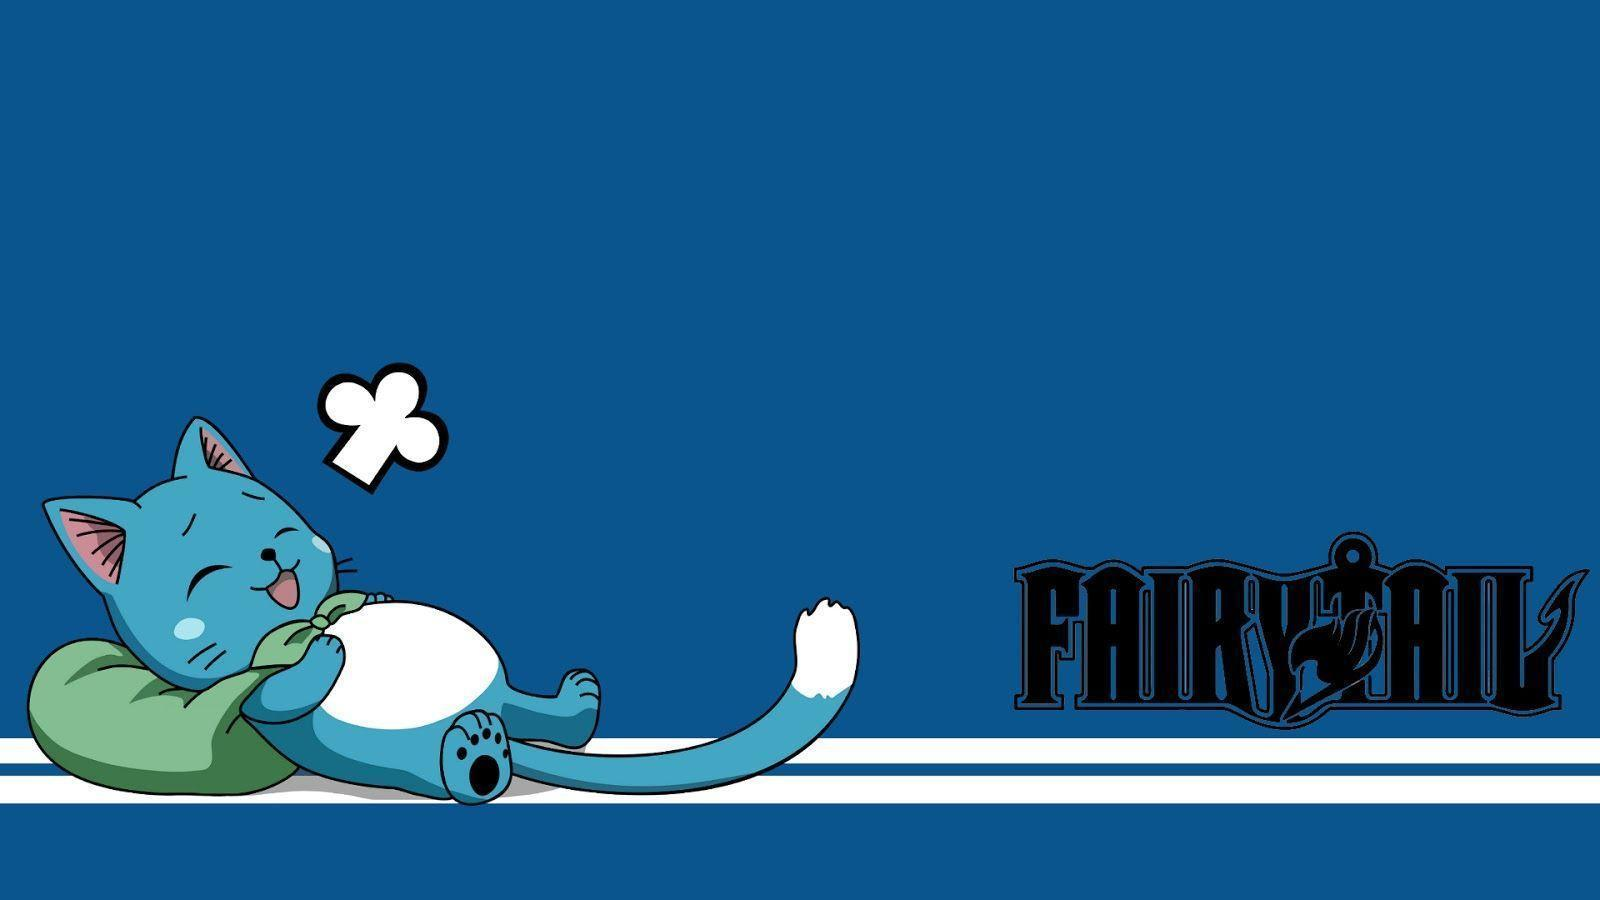 HAPPYTEY'S DAILY LIFE NOTES: FAIRY TAIL 's HAPPY WALLPAPER